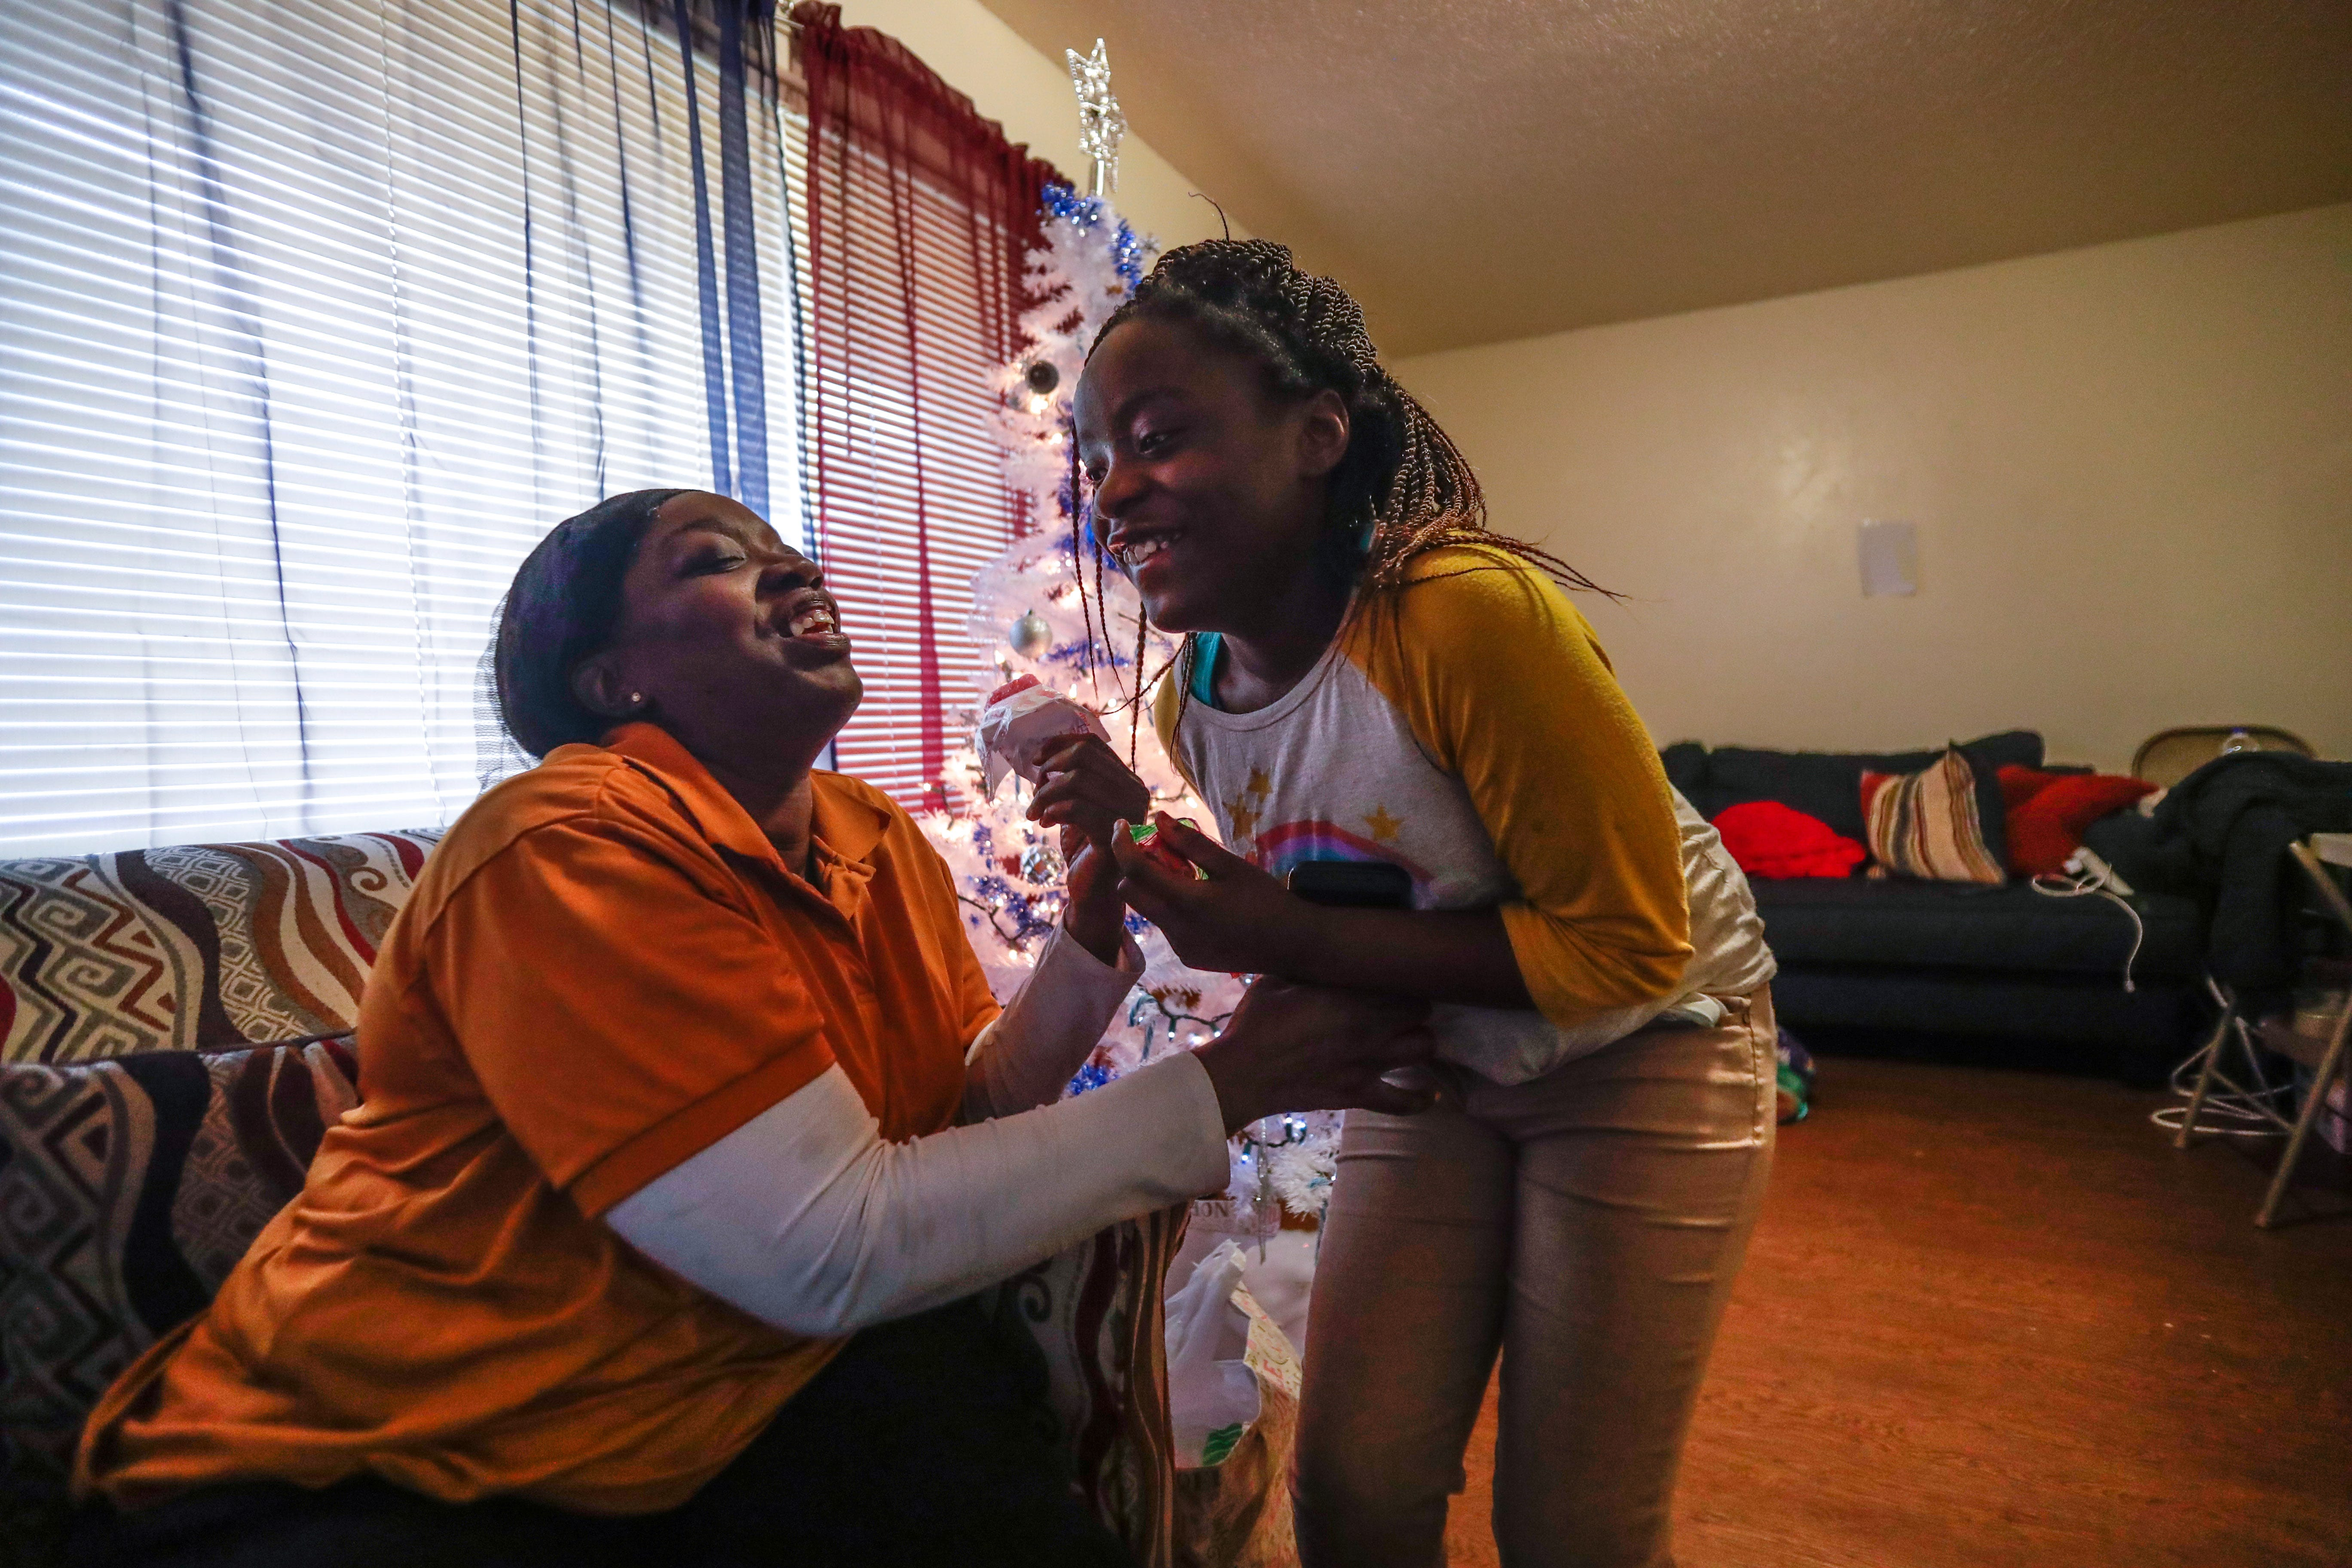 """Kisha Simms, 38, tickles her daughter Deitra """"DeeDee"""" Jackson, 11, as they both have an afternoon snack and catch up on each other's day."""